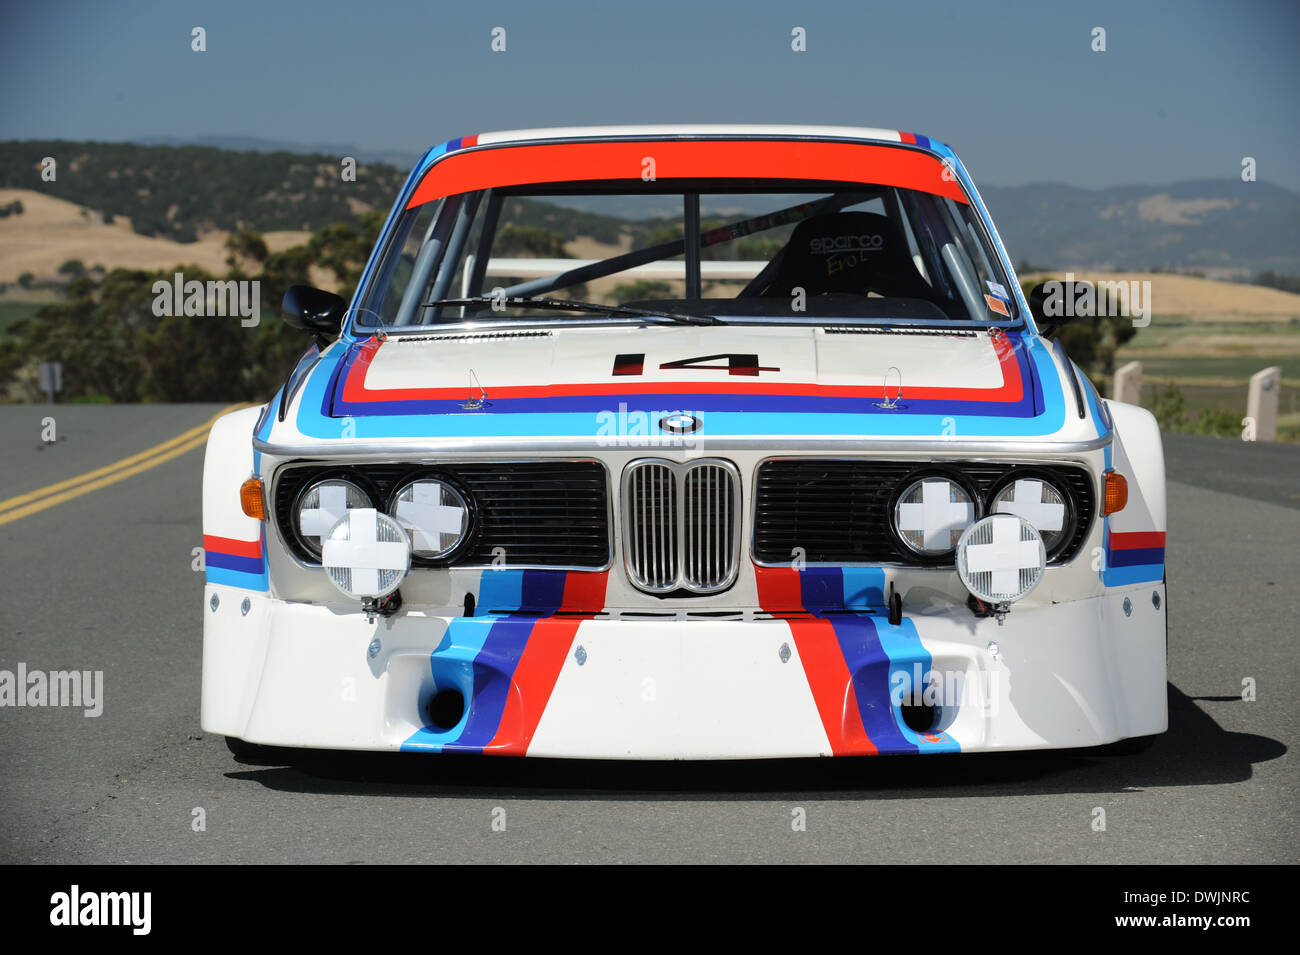 Coupe Series 1970 bmw coupe 1970 BMW CSL Group 2 Coupe Stock Photo: 67409760 - Alamy